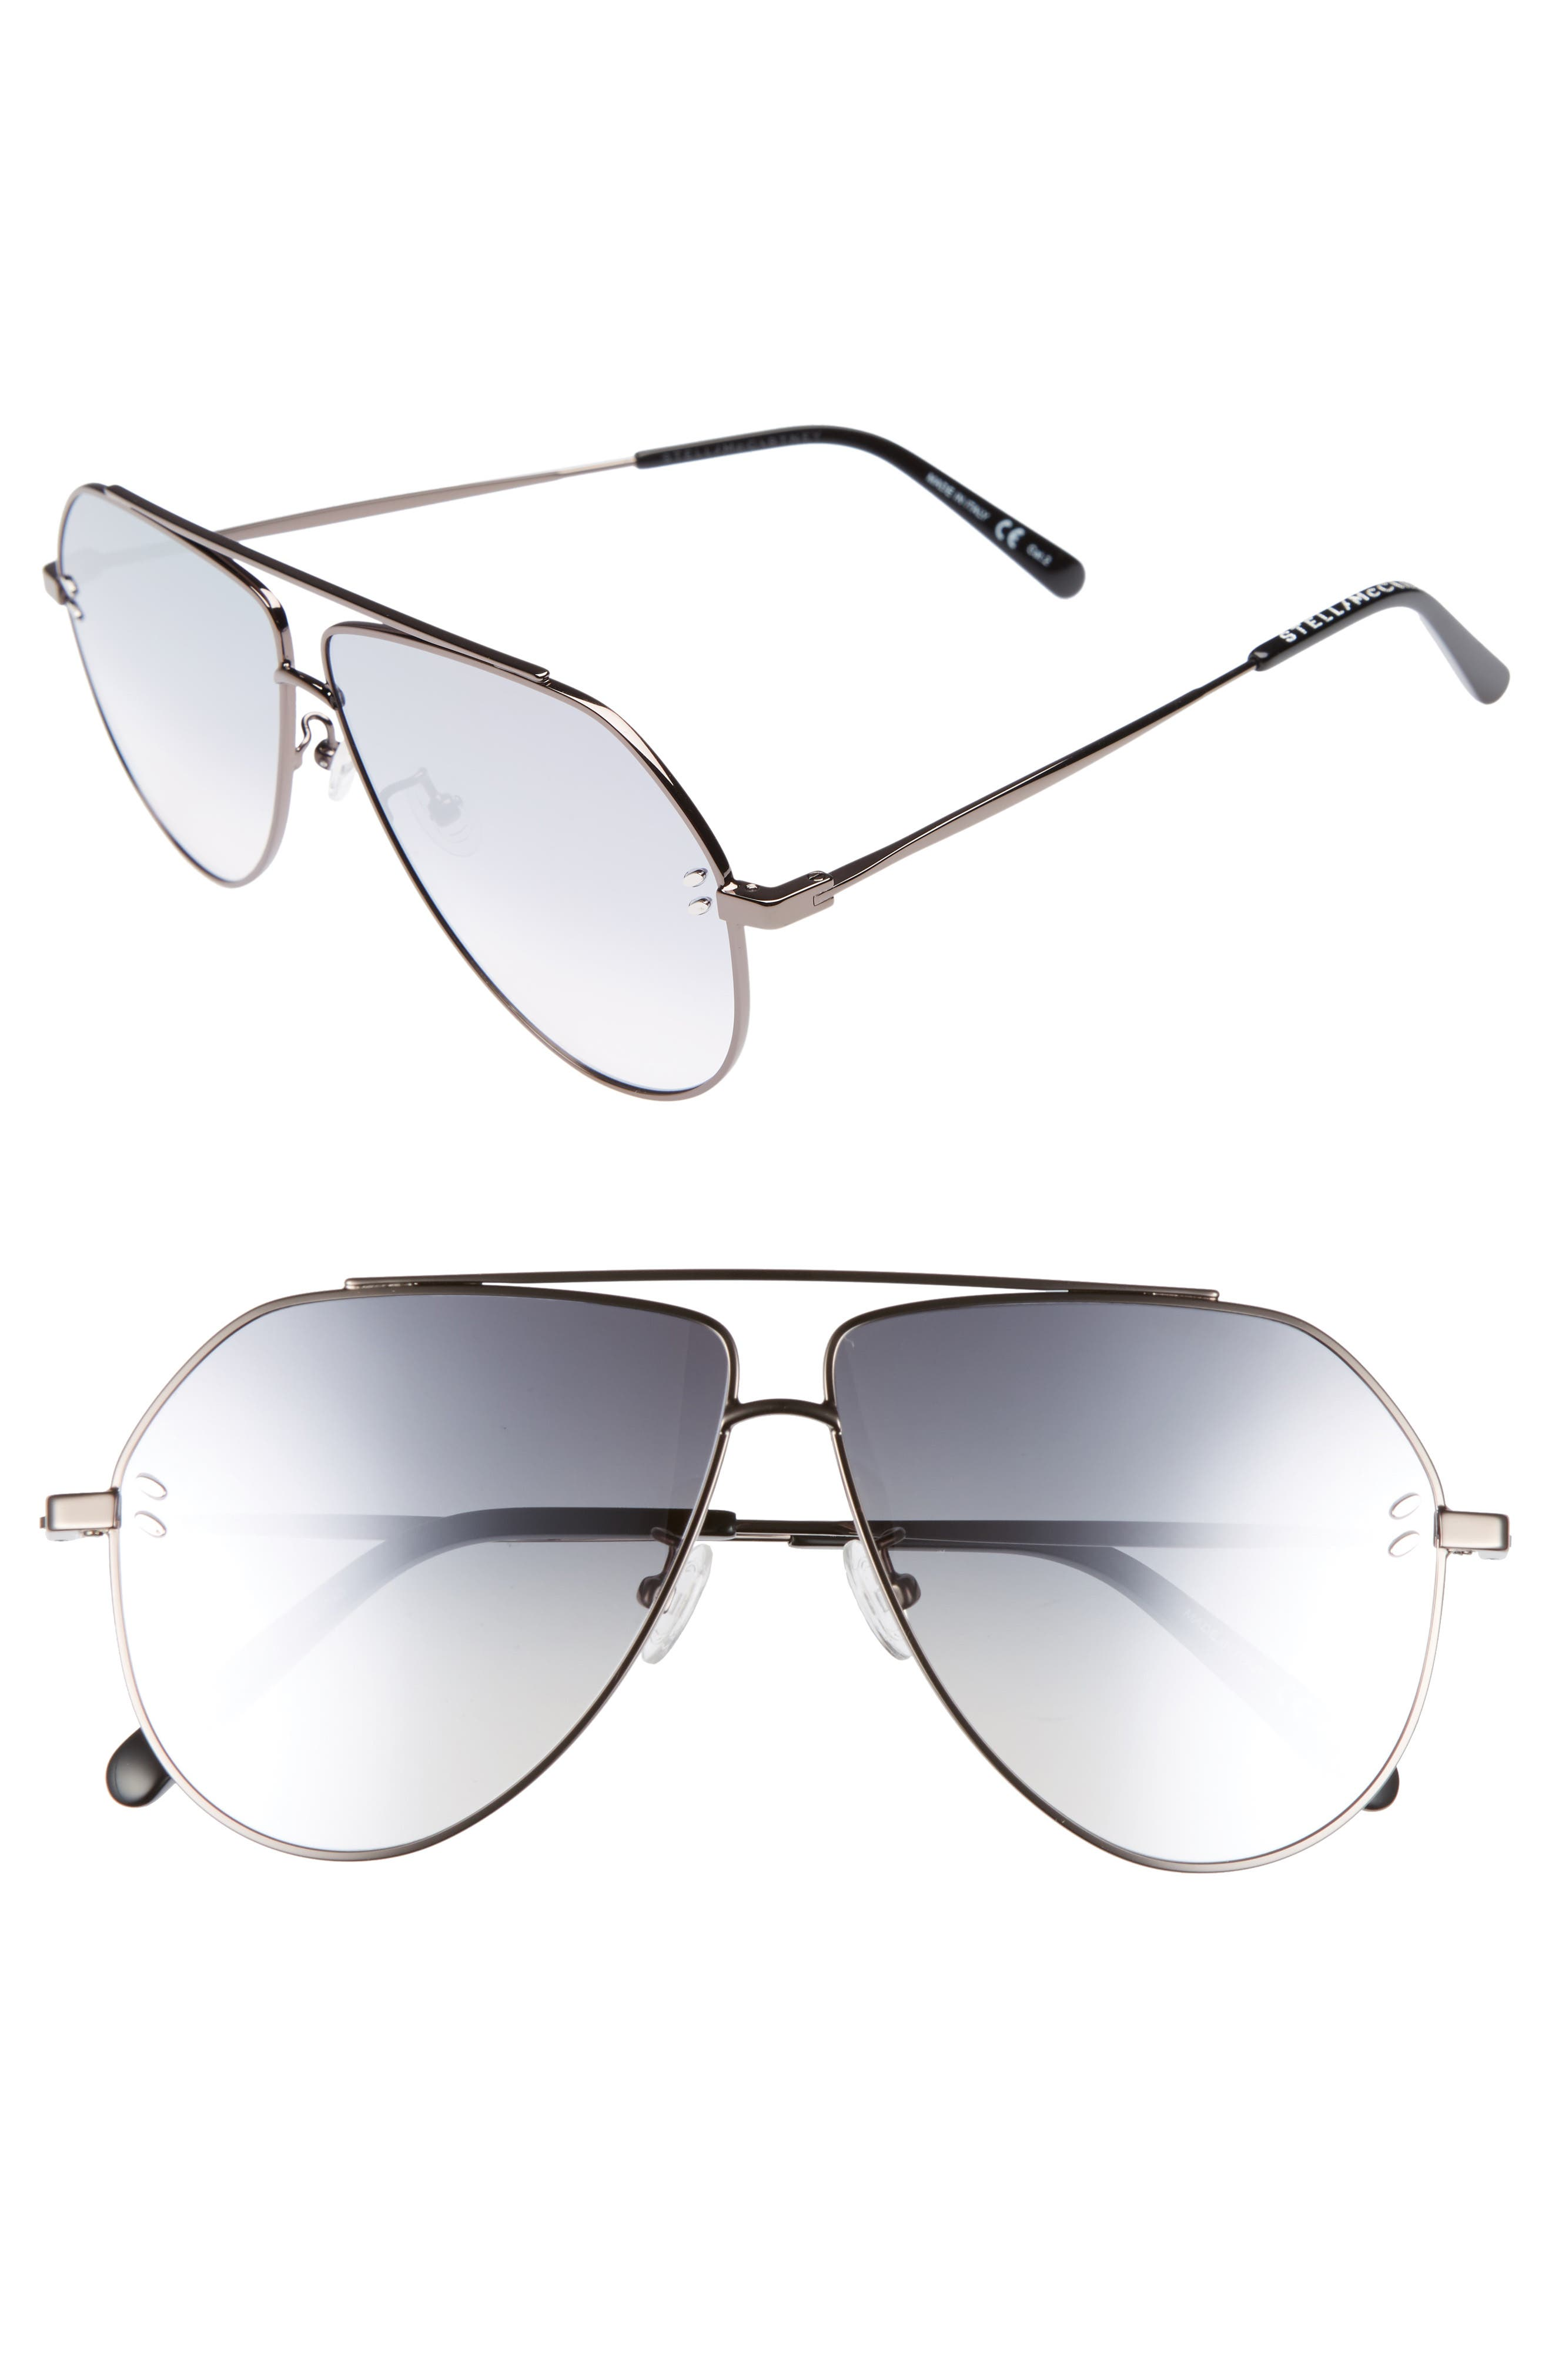 60MM AVIATOR SUNGLASSES - RUTHENIUM